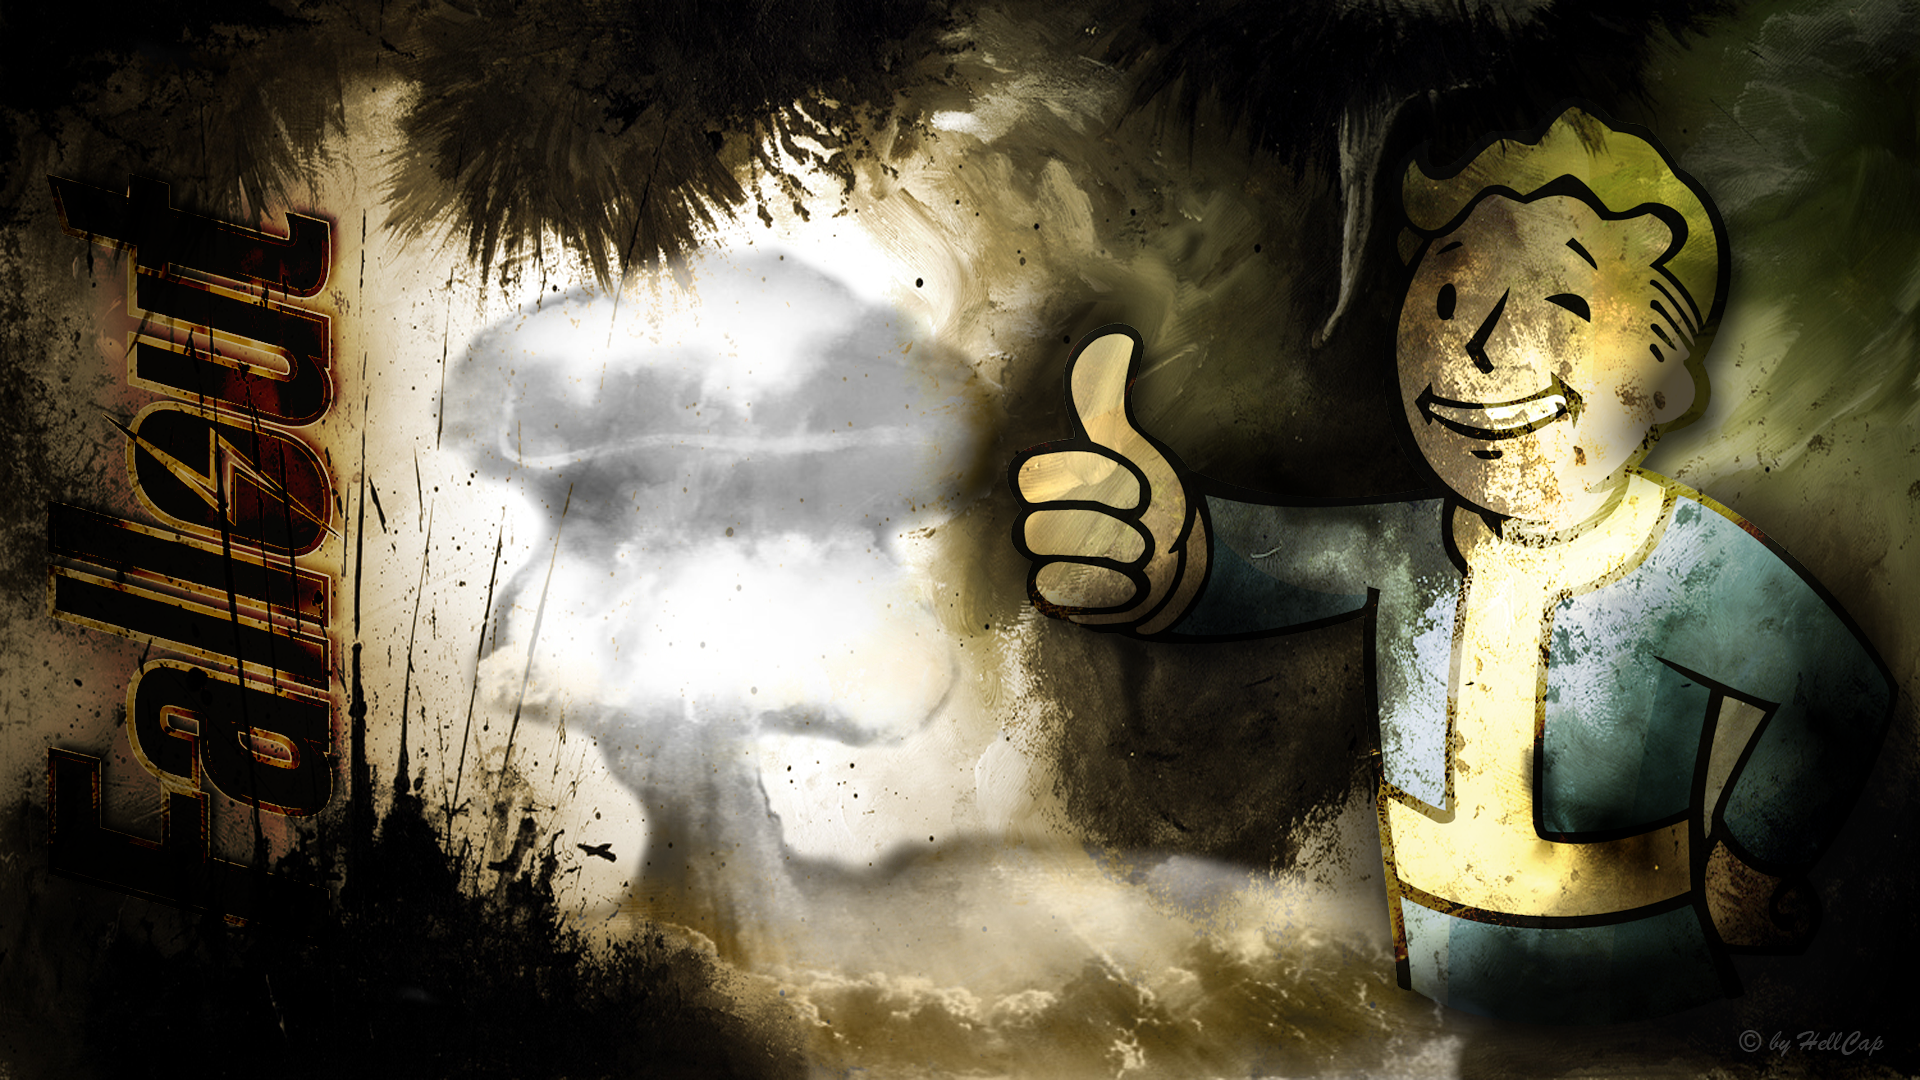 Fallout Vault Boy Wallpaper By Netbase On Deviantart